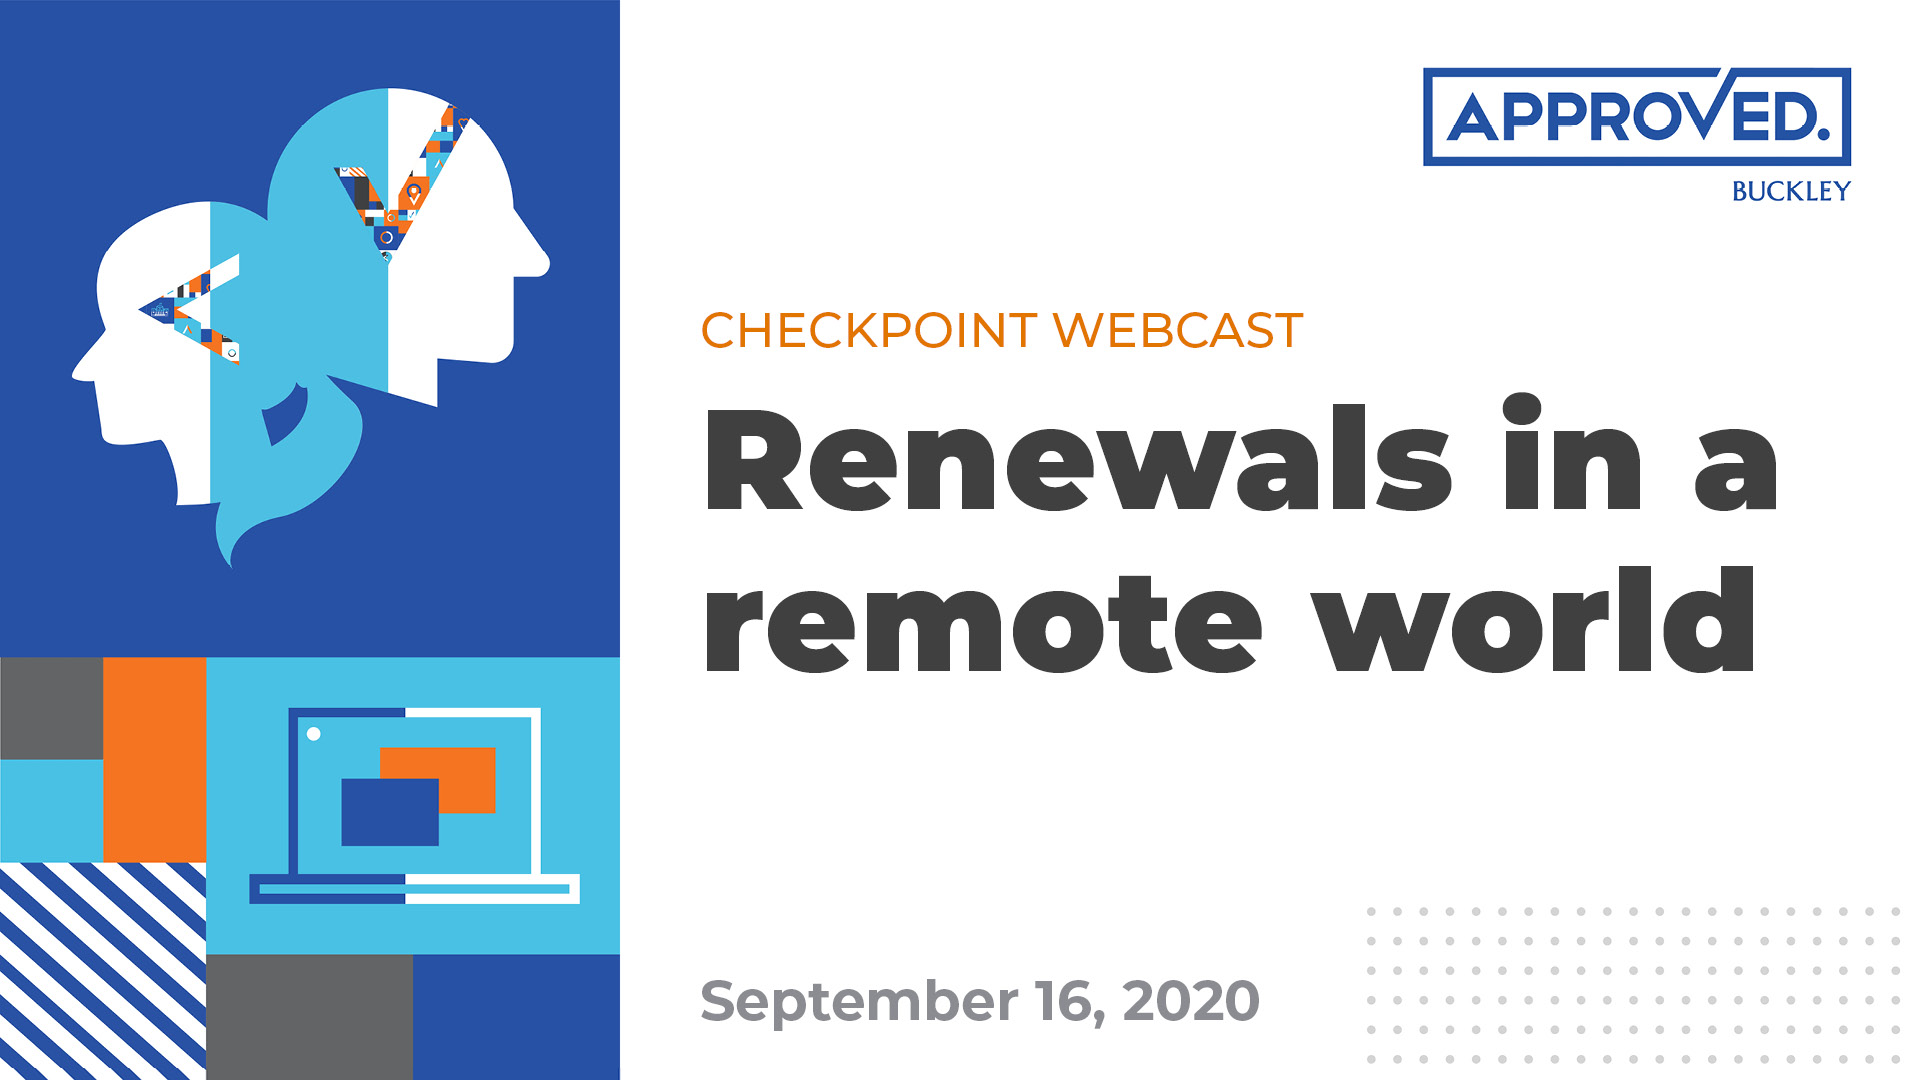 Checkpoint Webcast | Renewals in a remote world